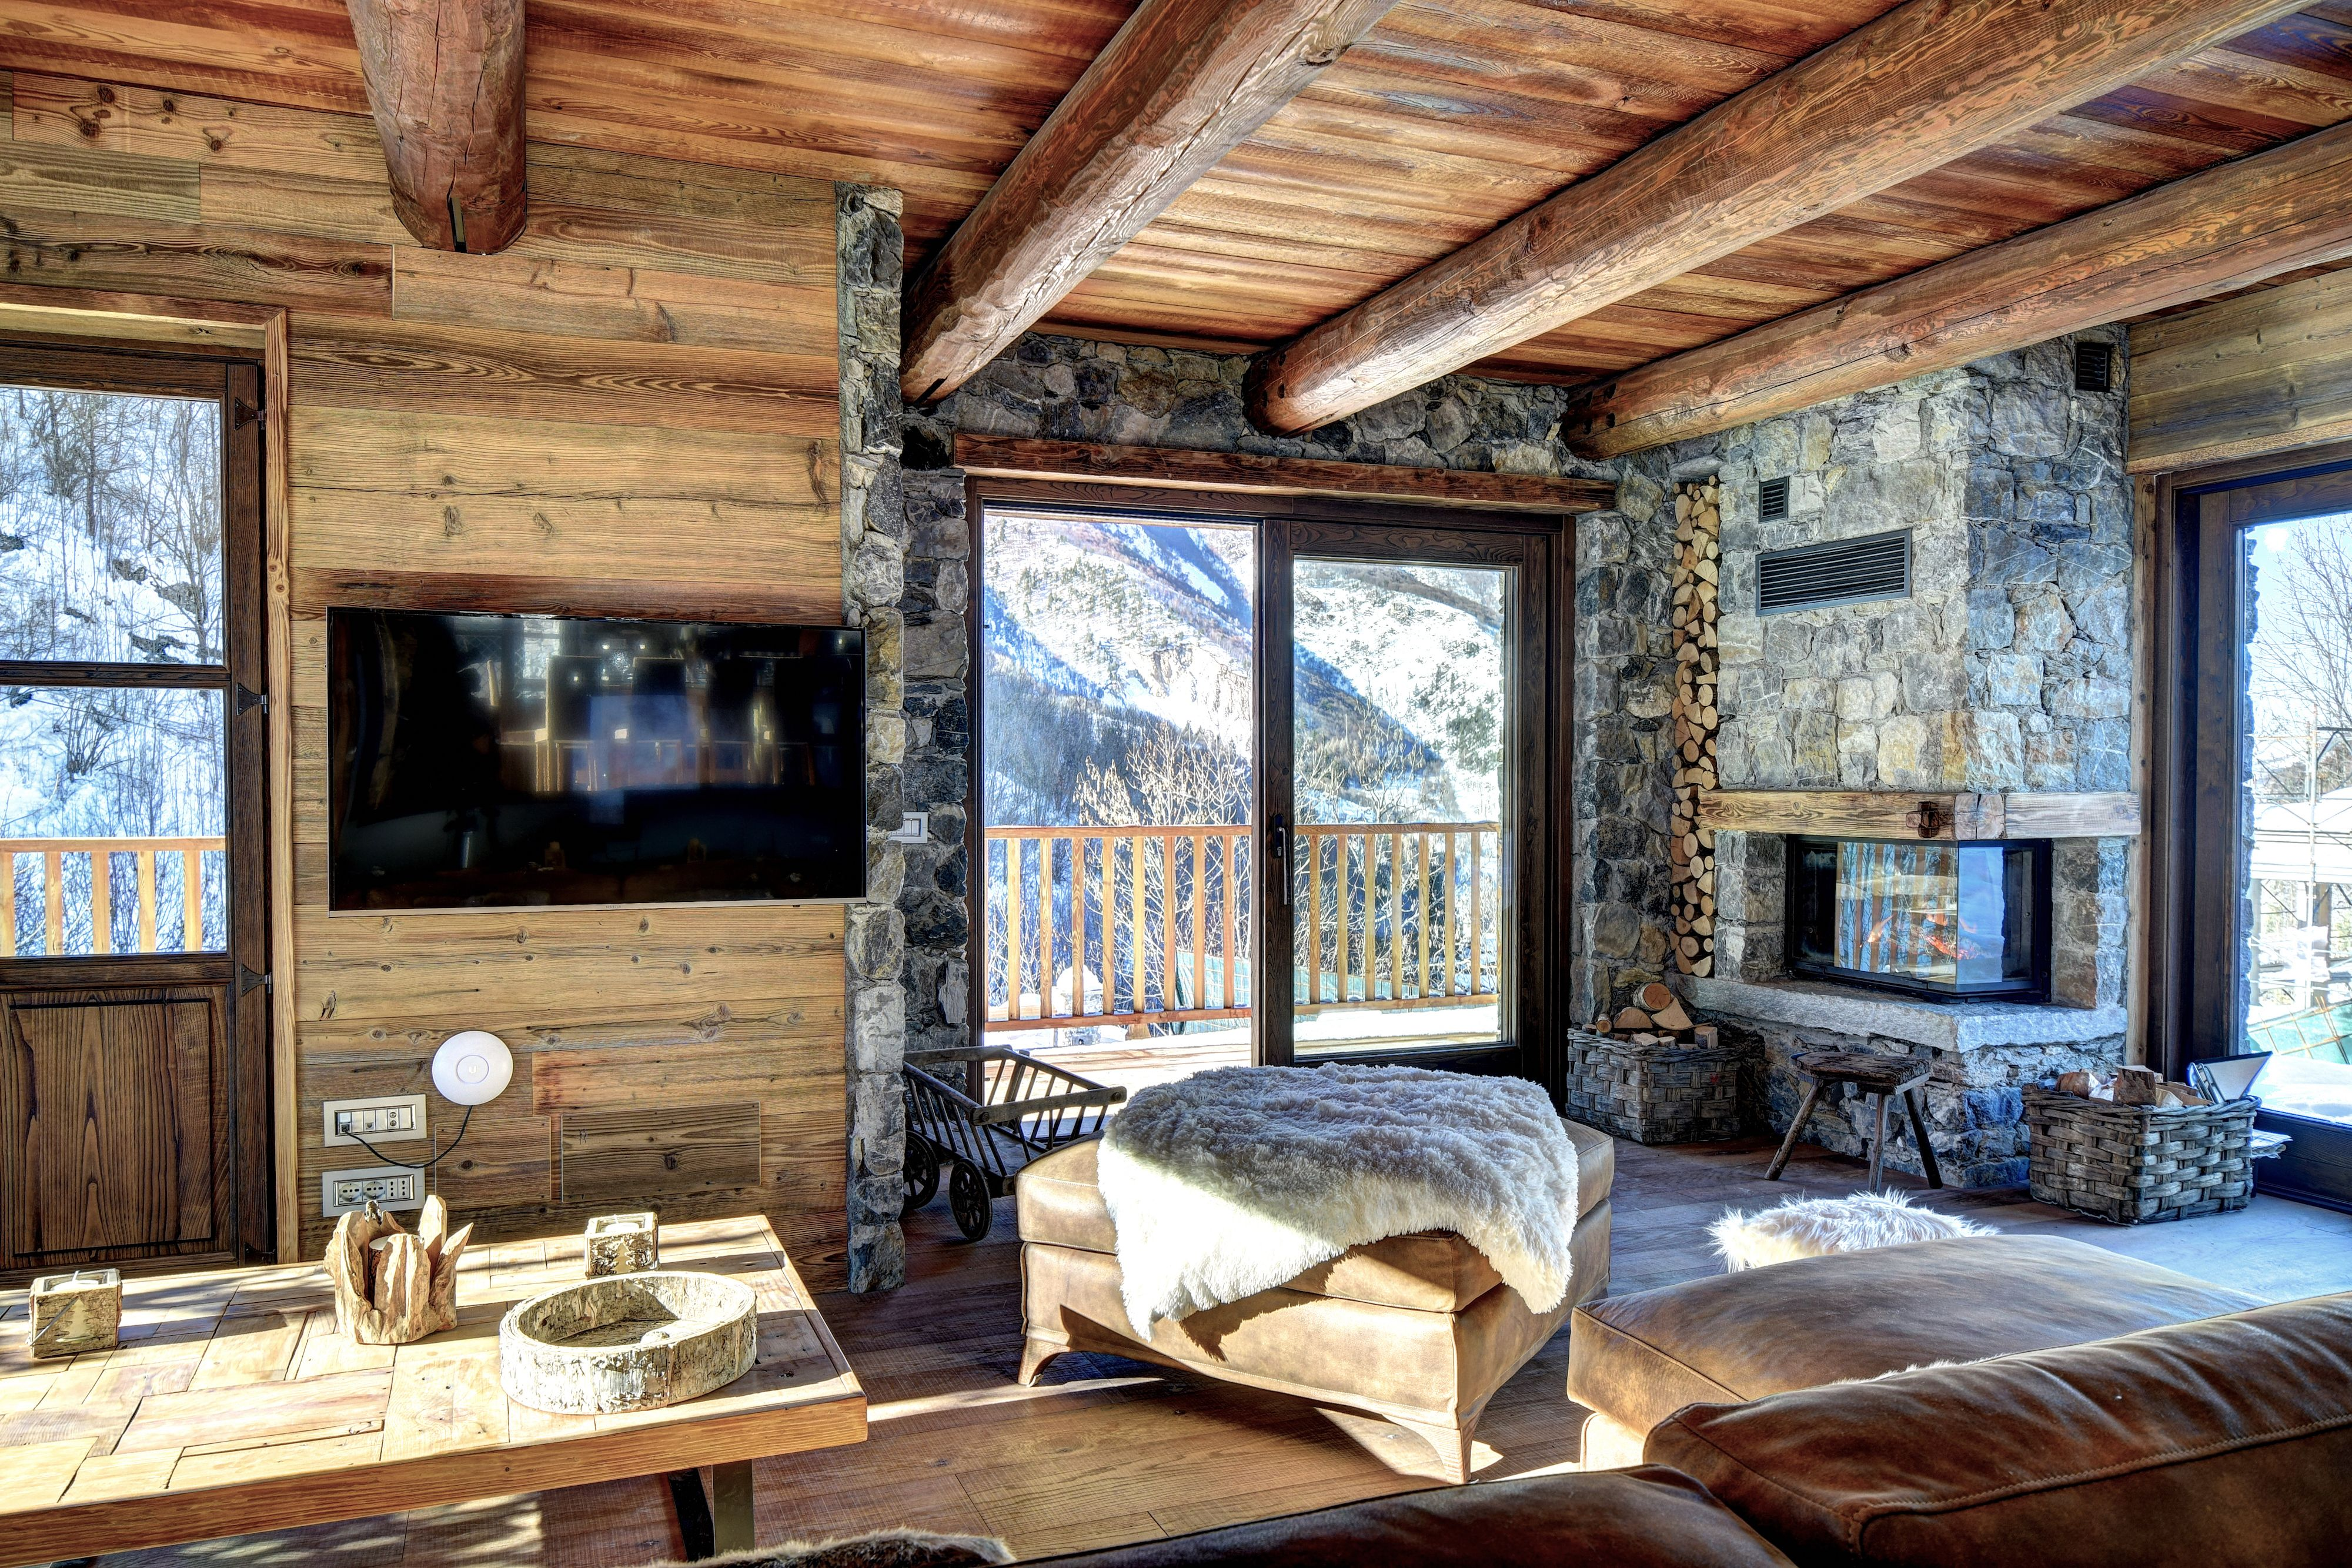 Ski chalet furniture Cabin Ski Chalet Living Room With Leather Sofa Fireplace Wooden Floor And Furniture Stone Details Windows With Amazing View On The Slopes Charis White Interiors Ski Chalet Living Room With Leather Sofa Fireplace Wooden Floor